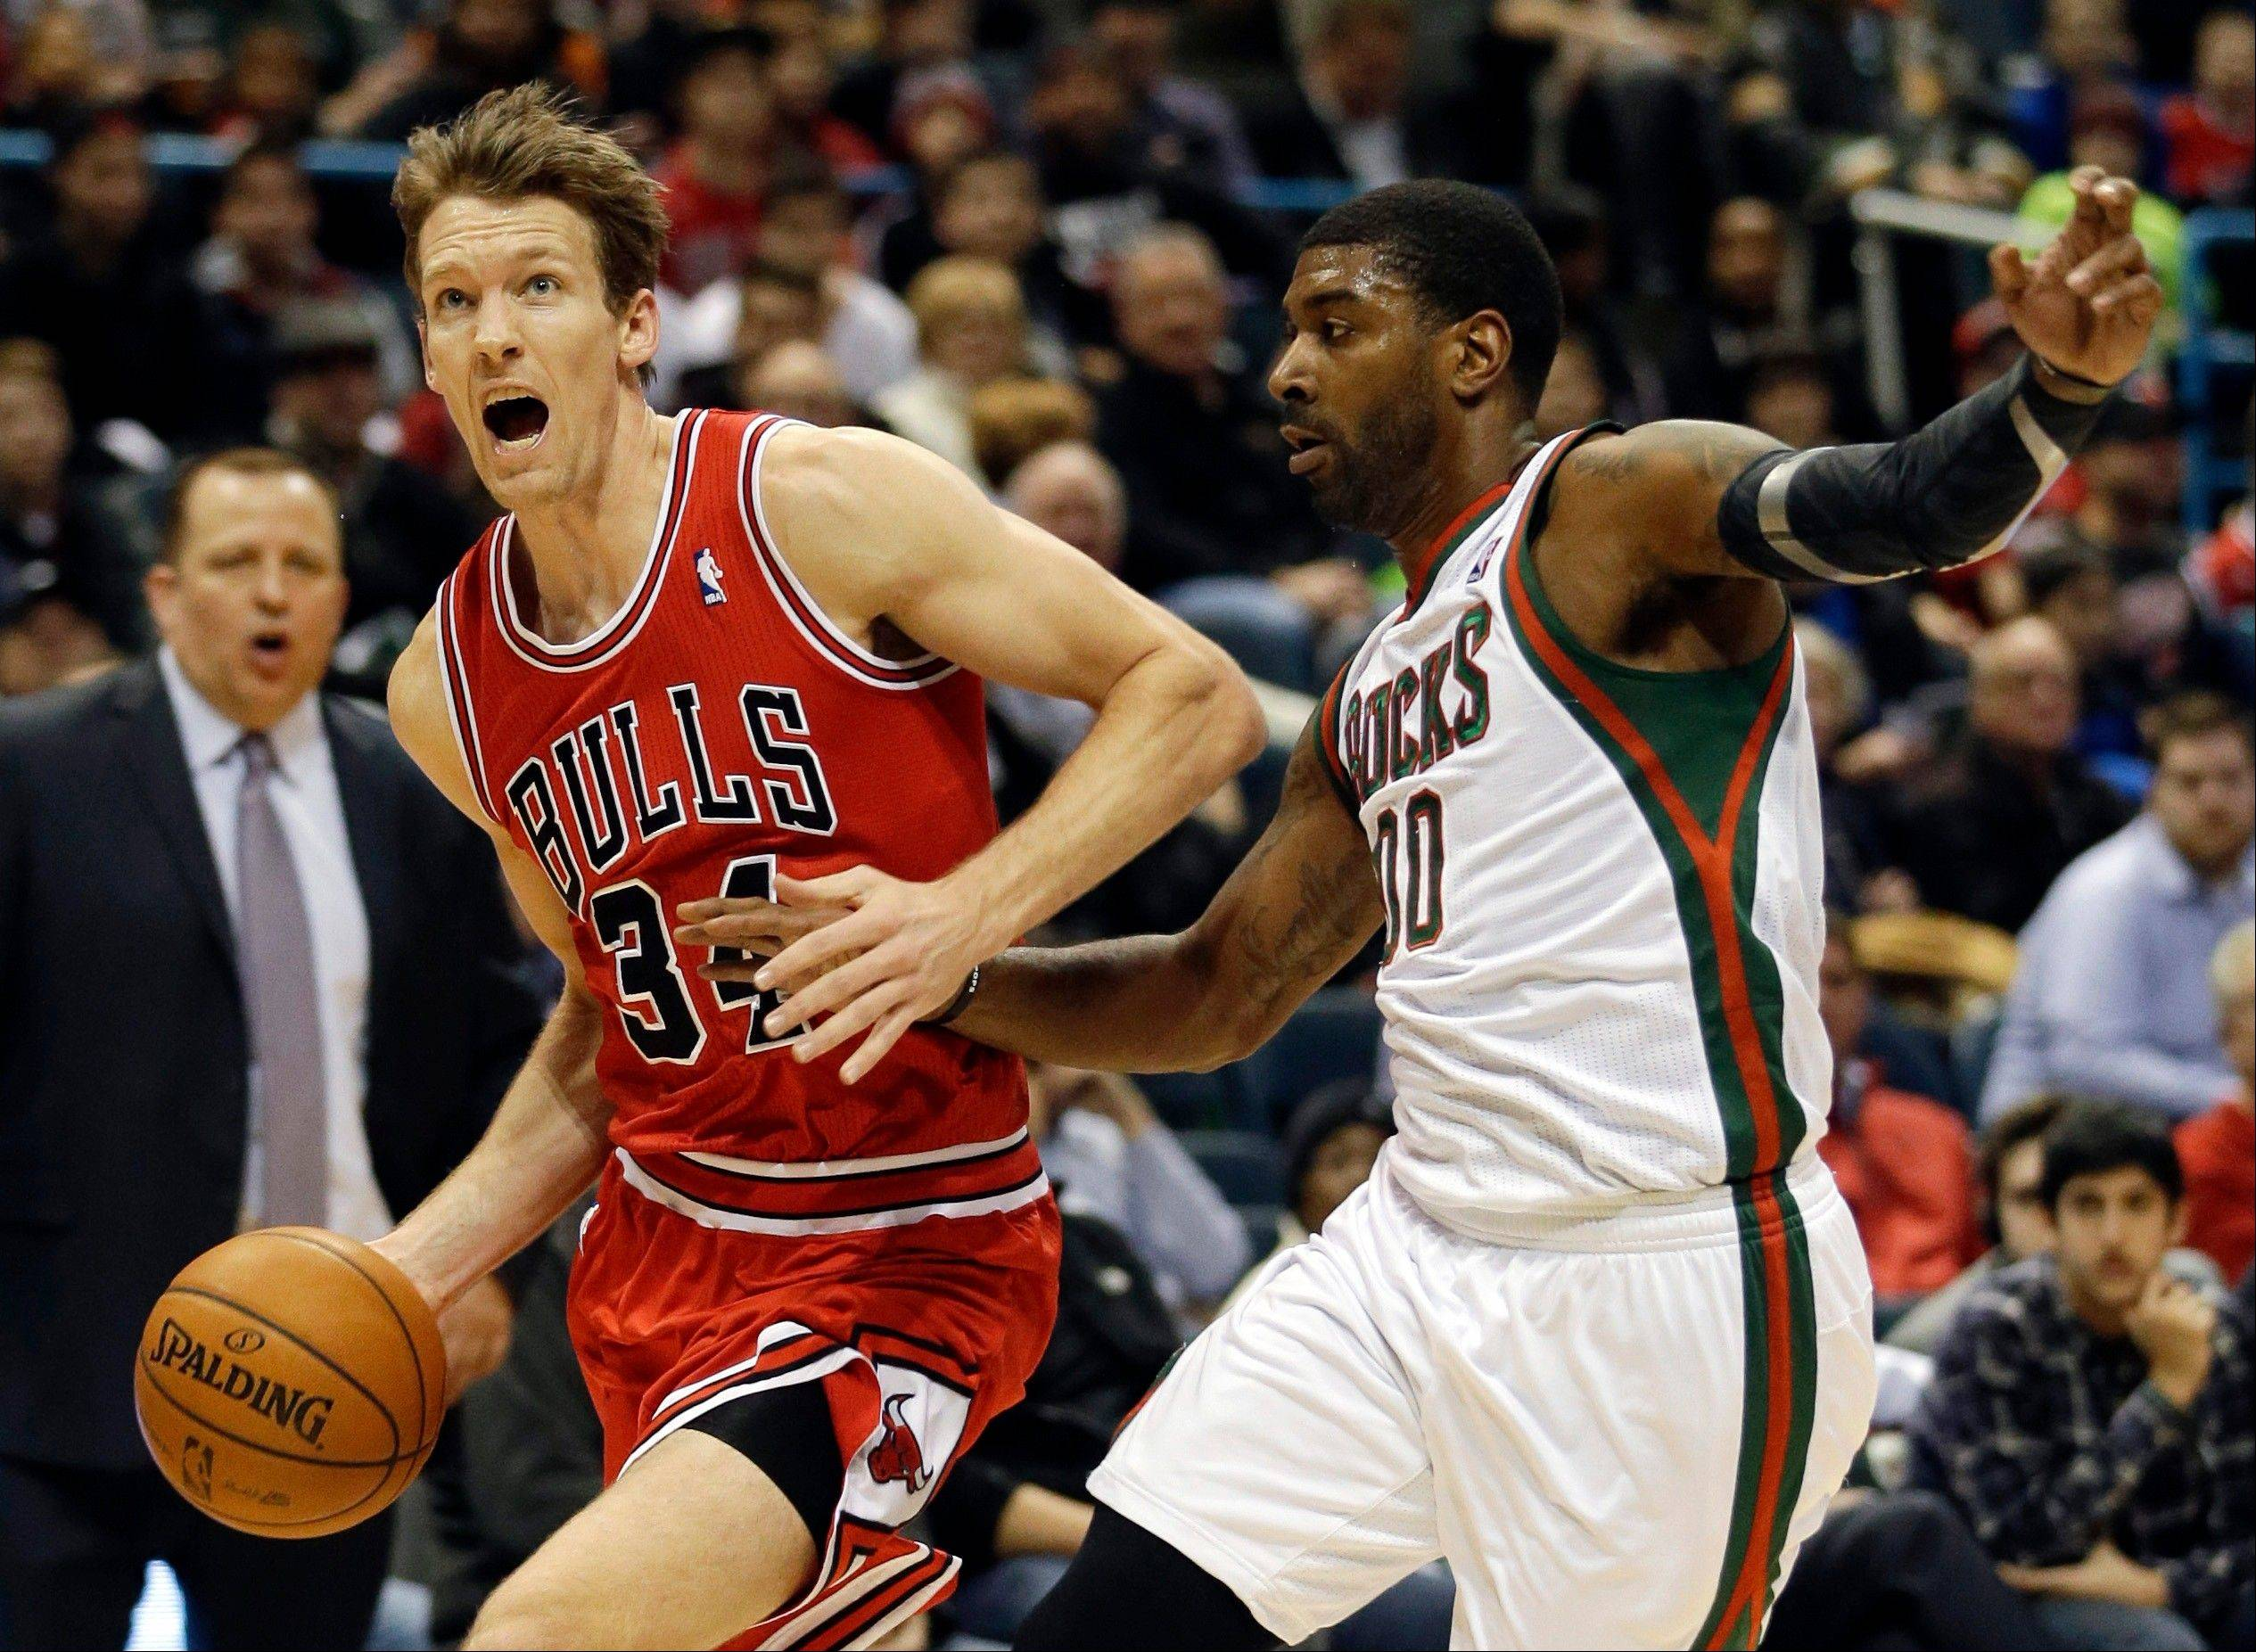 Chicago Bulls� Mike Dunleavy, left, is fouled as he tries to drive past Milwaukee Bucks� O.J. Mayo during the first half of an NBA basketball game Friday in Milwaukee. Dunleavy would hit a late 3 pointer to propel the Bulls over the Bucks for the win.